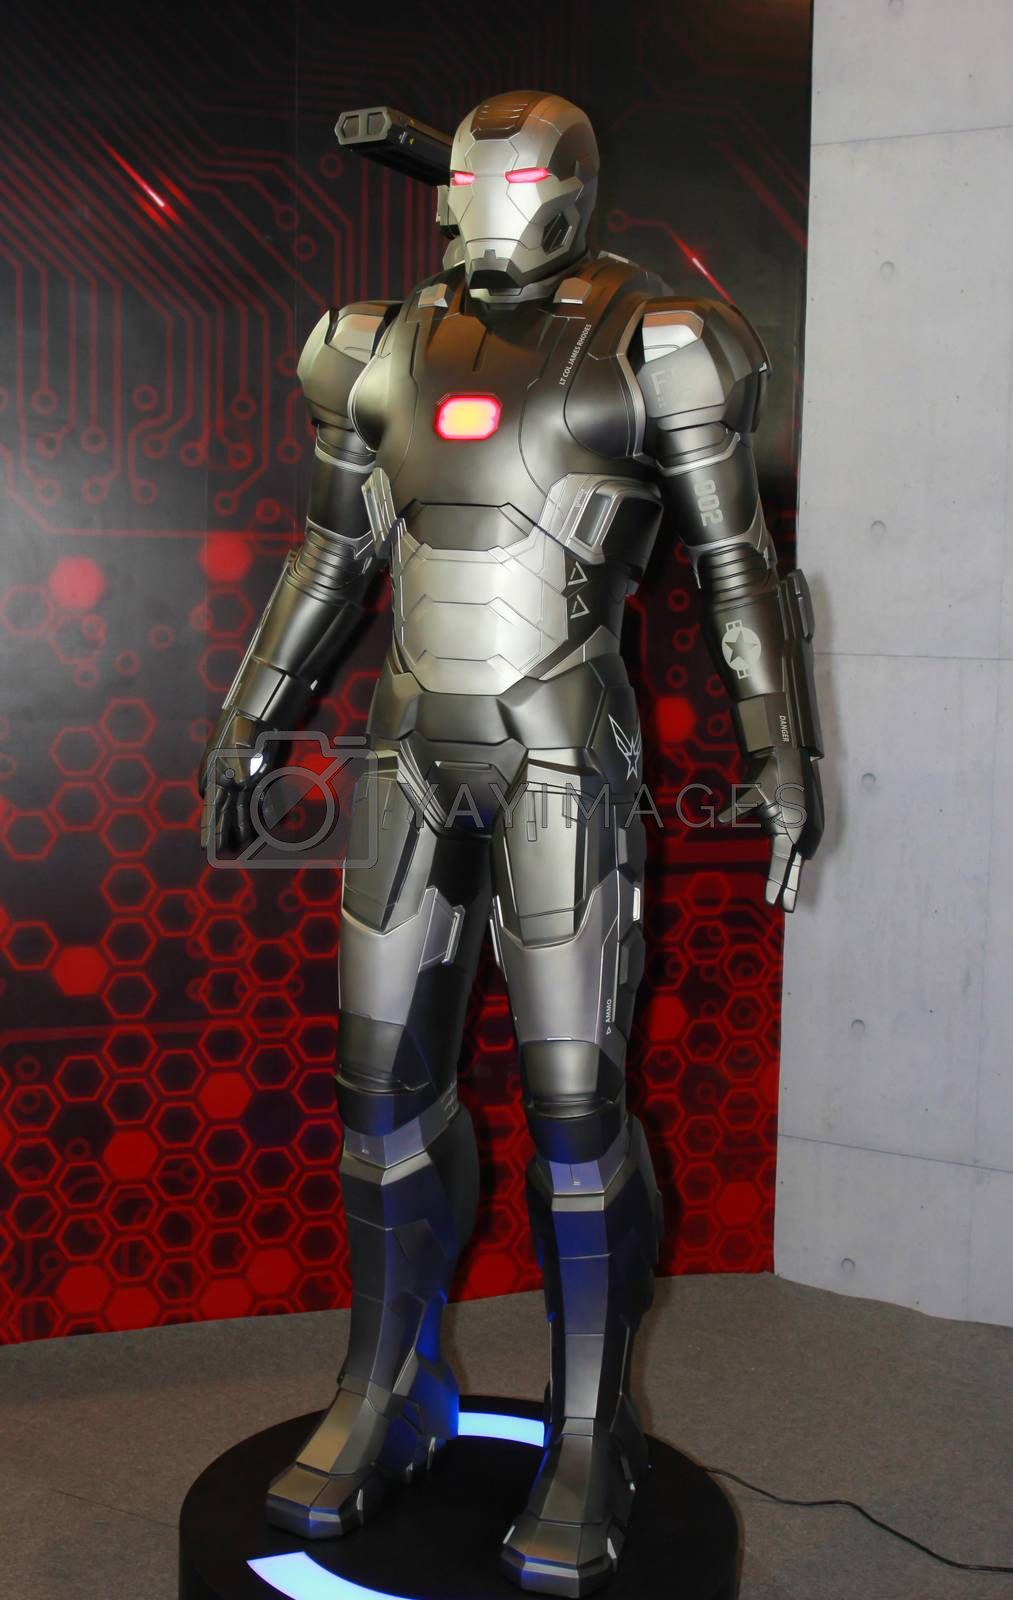 Royalty free image of A model of the character Iron Man from the movies and comics 13 by redthirteen